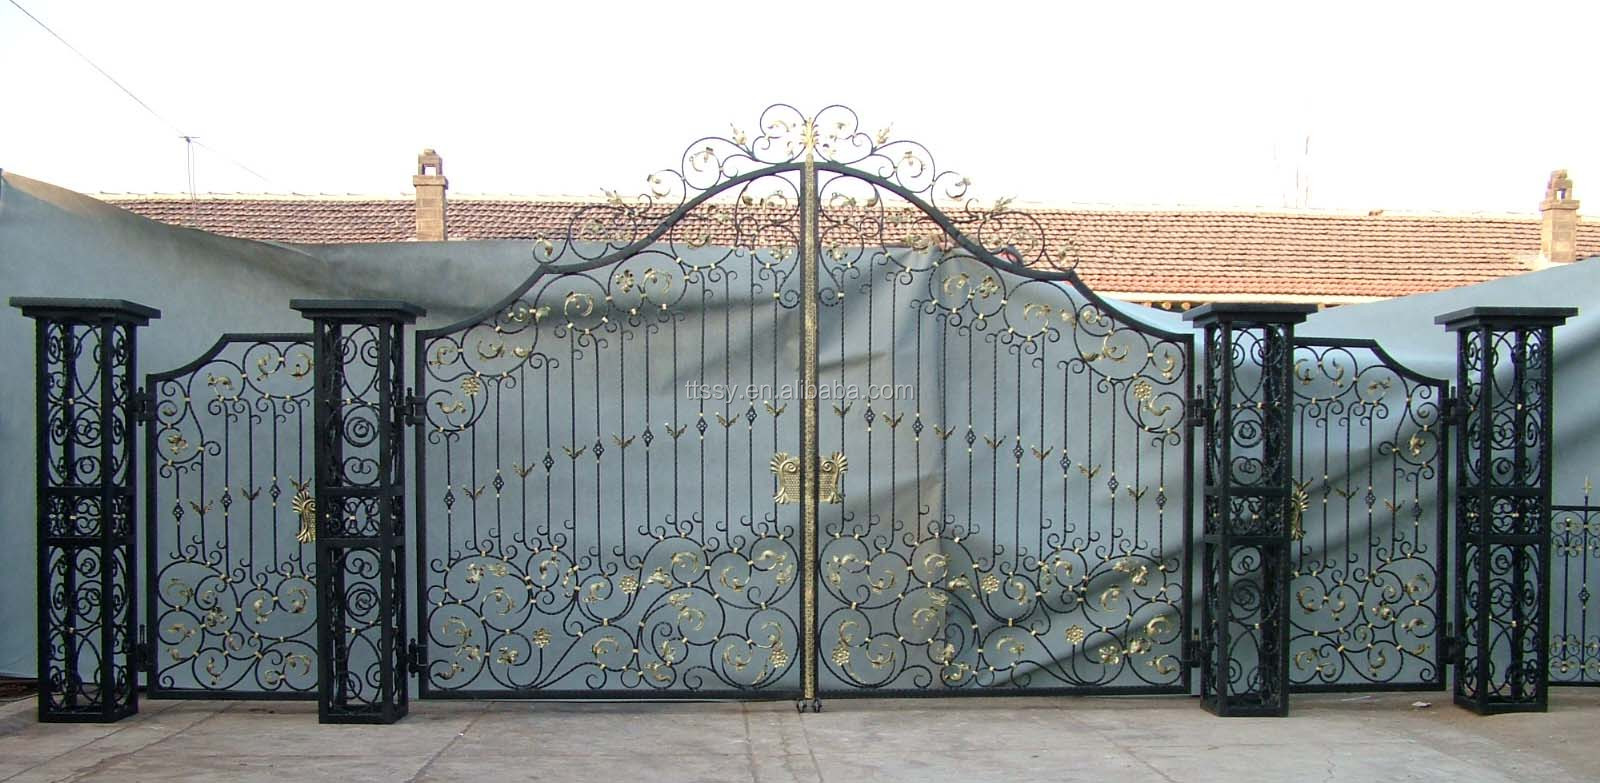 Modern Wrought Iron Main Gate Design For Home Villa And Garden   Buy Main  Iron Gate Main Iron Gate Iron Gates Product on Alibaba com. Modern Wrought Iron Main Gate Design For Home Villa And Garden